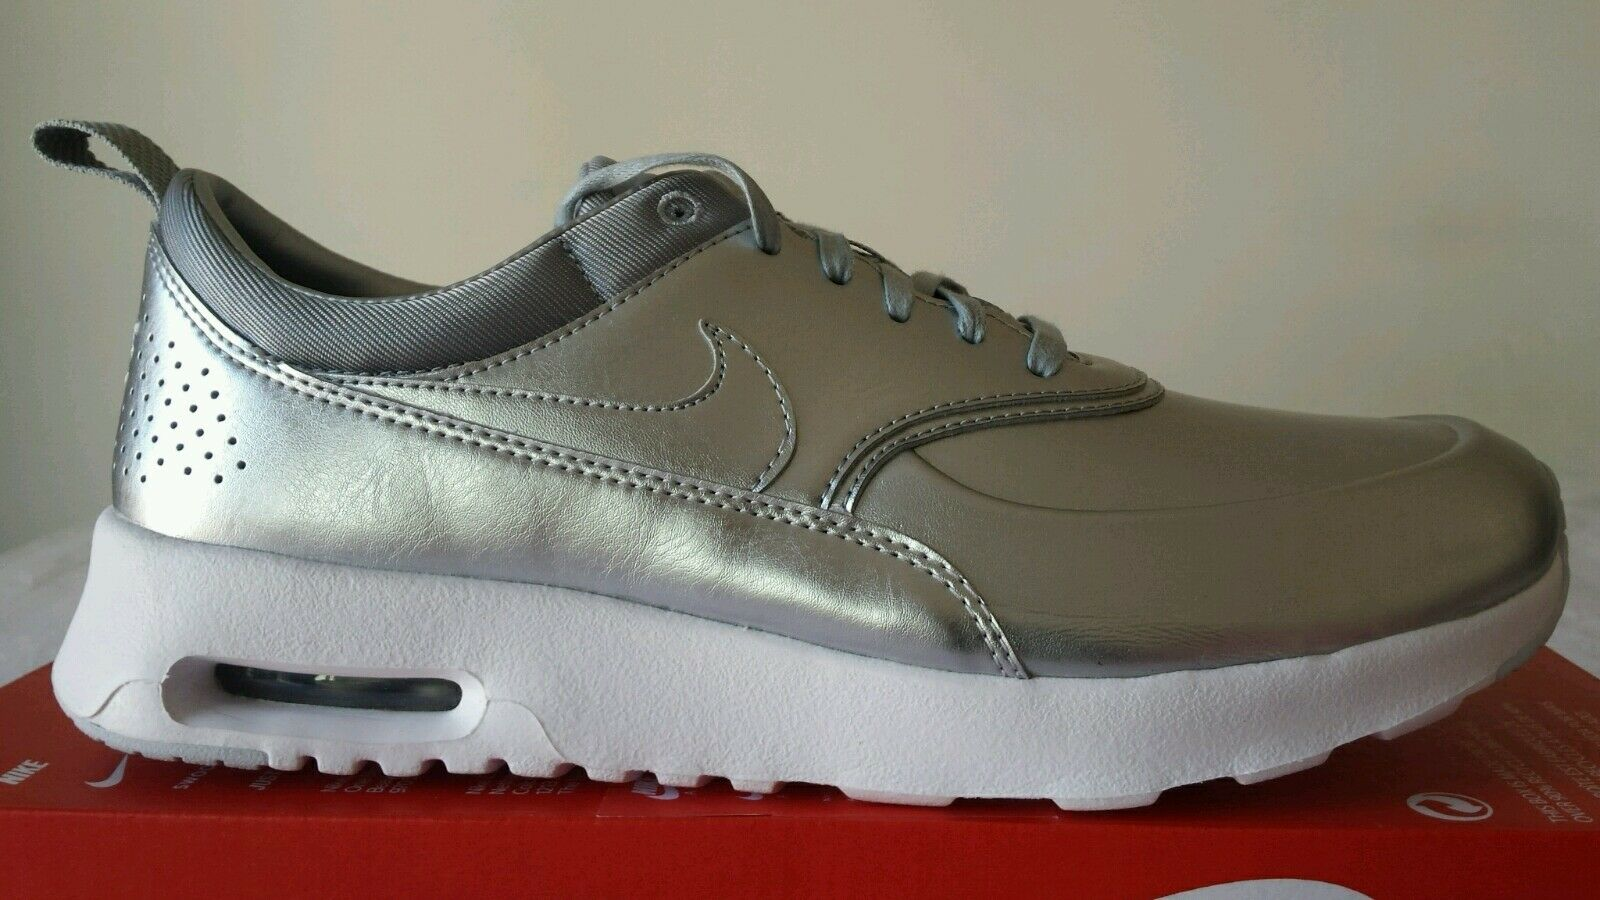 NIKE NIKE NIKE AIR MAX THEA PREMIUM WMNS ARGENTO N.40,5 STUPENDE NEW COLOR LIMITED OKSPORT d870d8